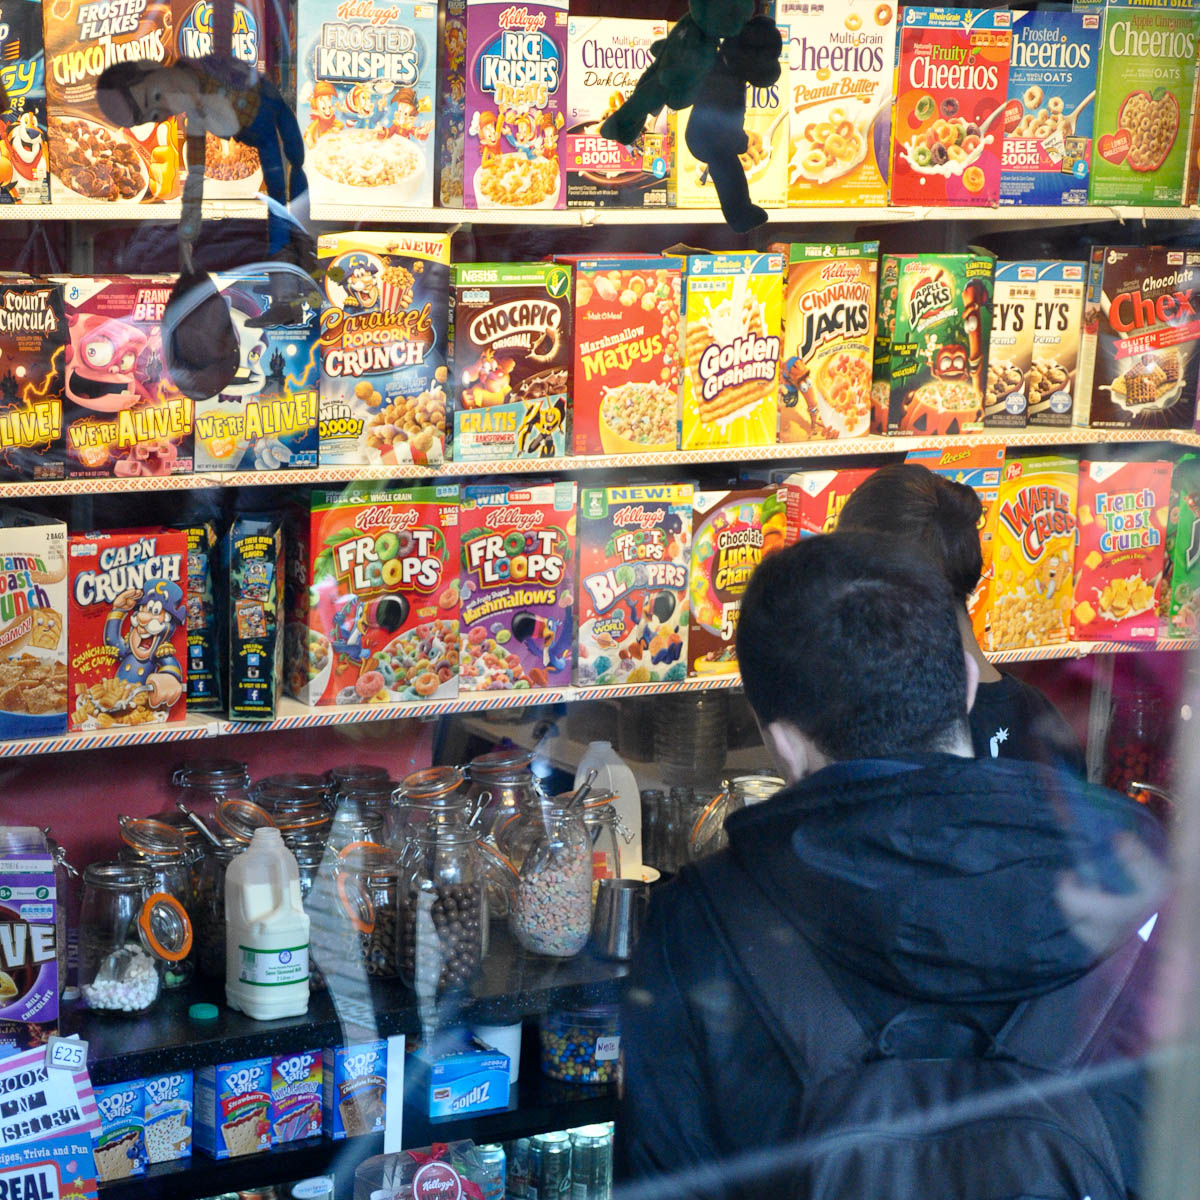 Ordering at the Cereal Killer Cafe, The Stables Market, Camden Town, London, England